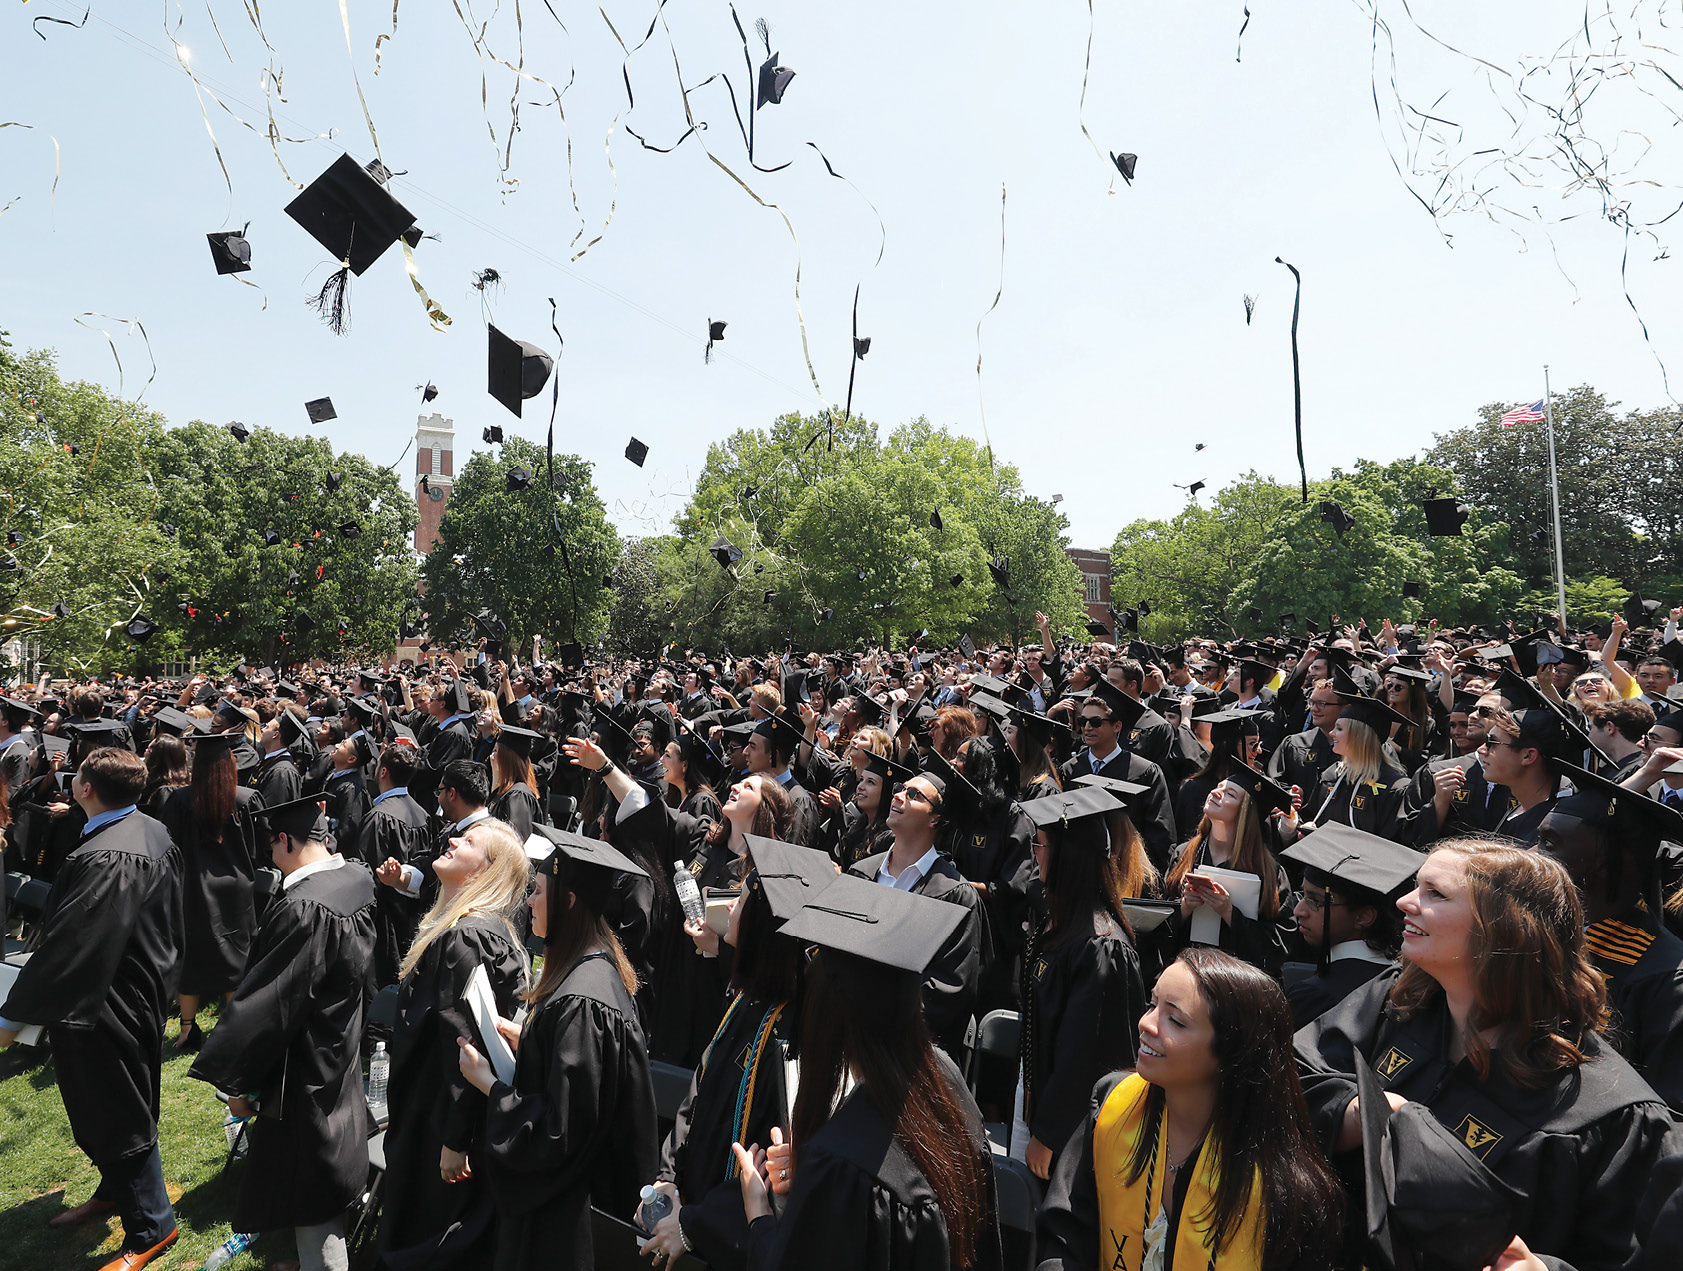 Chancellor Zeppos presided over a sunny May 11 Commencement ceremony at which 1,740 undergraduate and 2,160 graduate and professional students received their Vanderbilt degrees in front of thousands more friends and relatives. (JOHN RUSSELL)